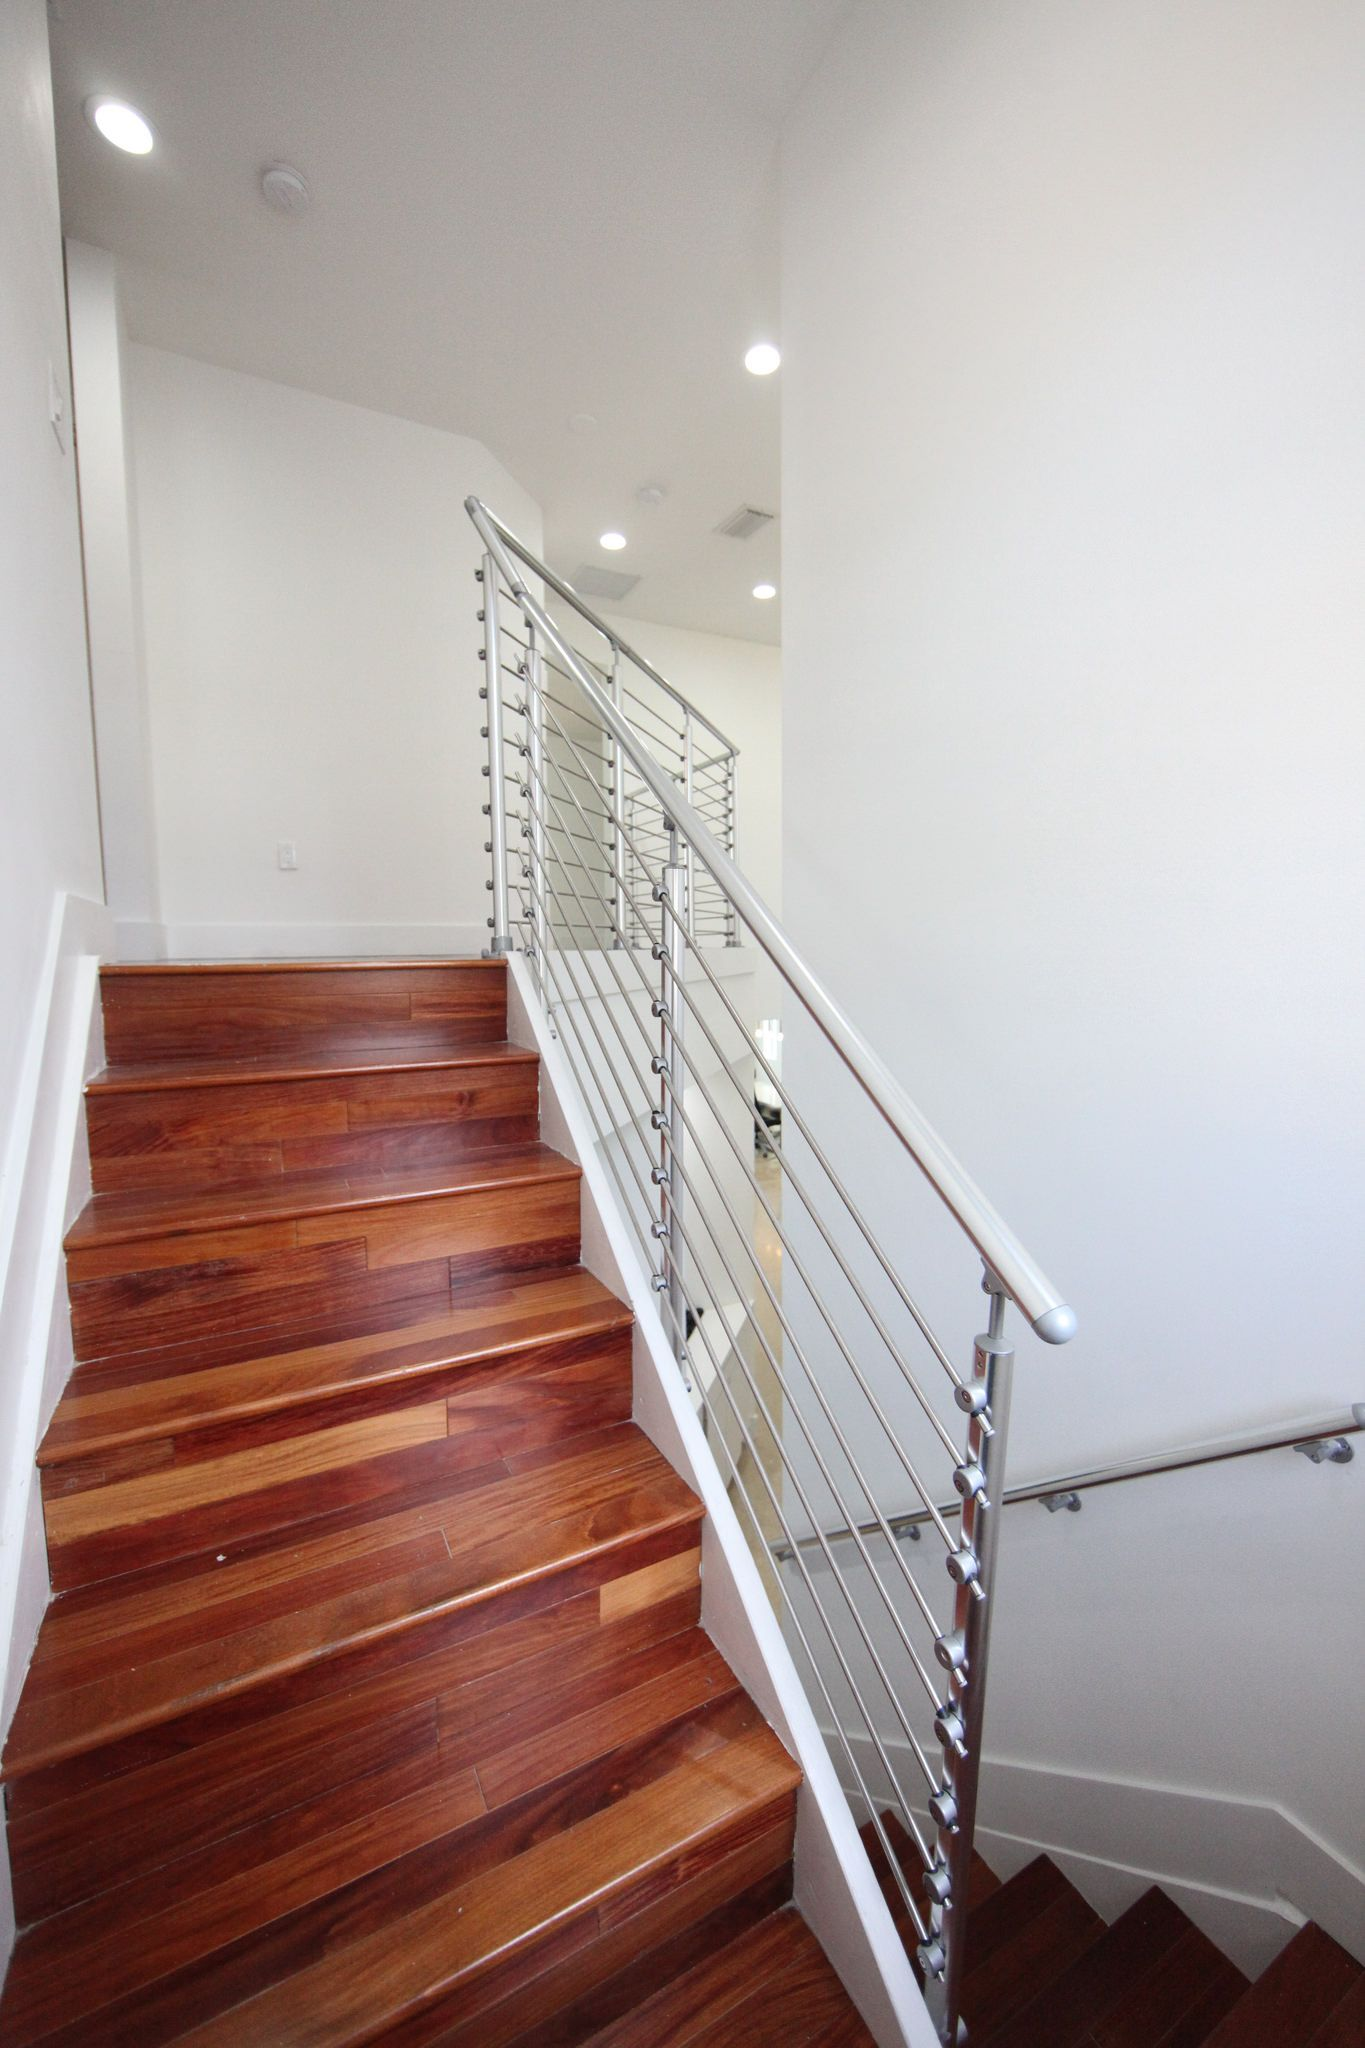 Prova Indoor Railing on Staircase with Tube InFill ...